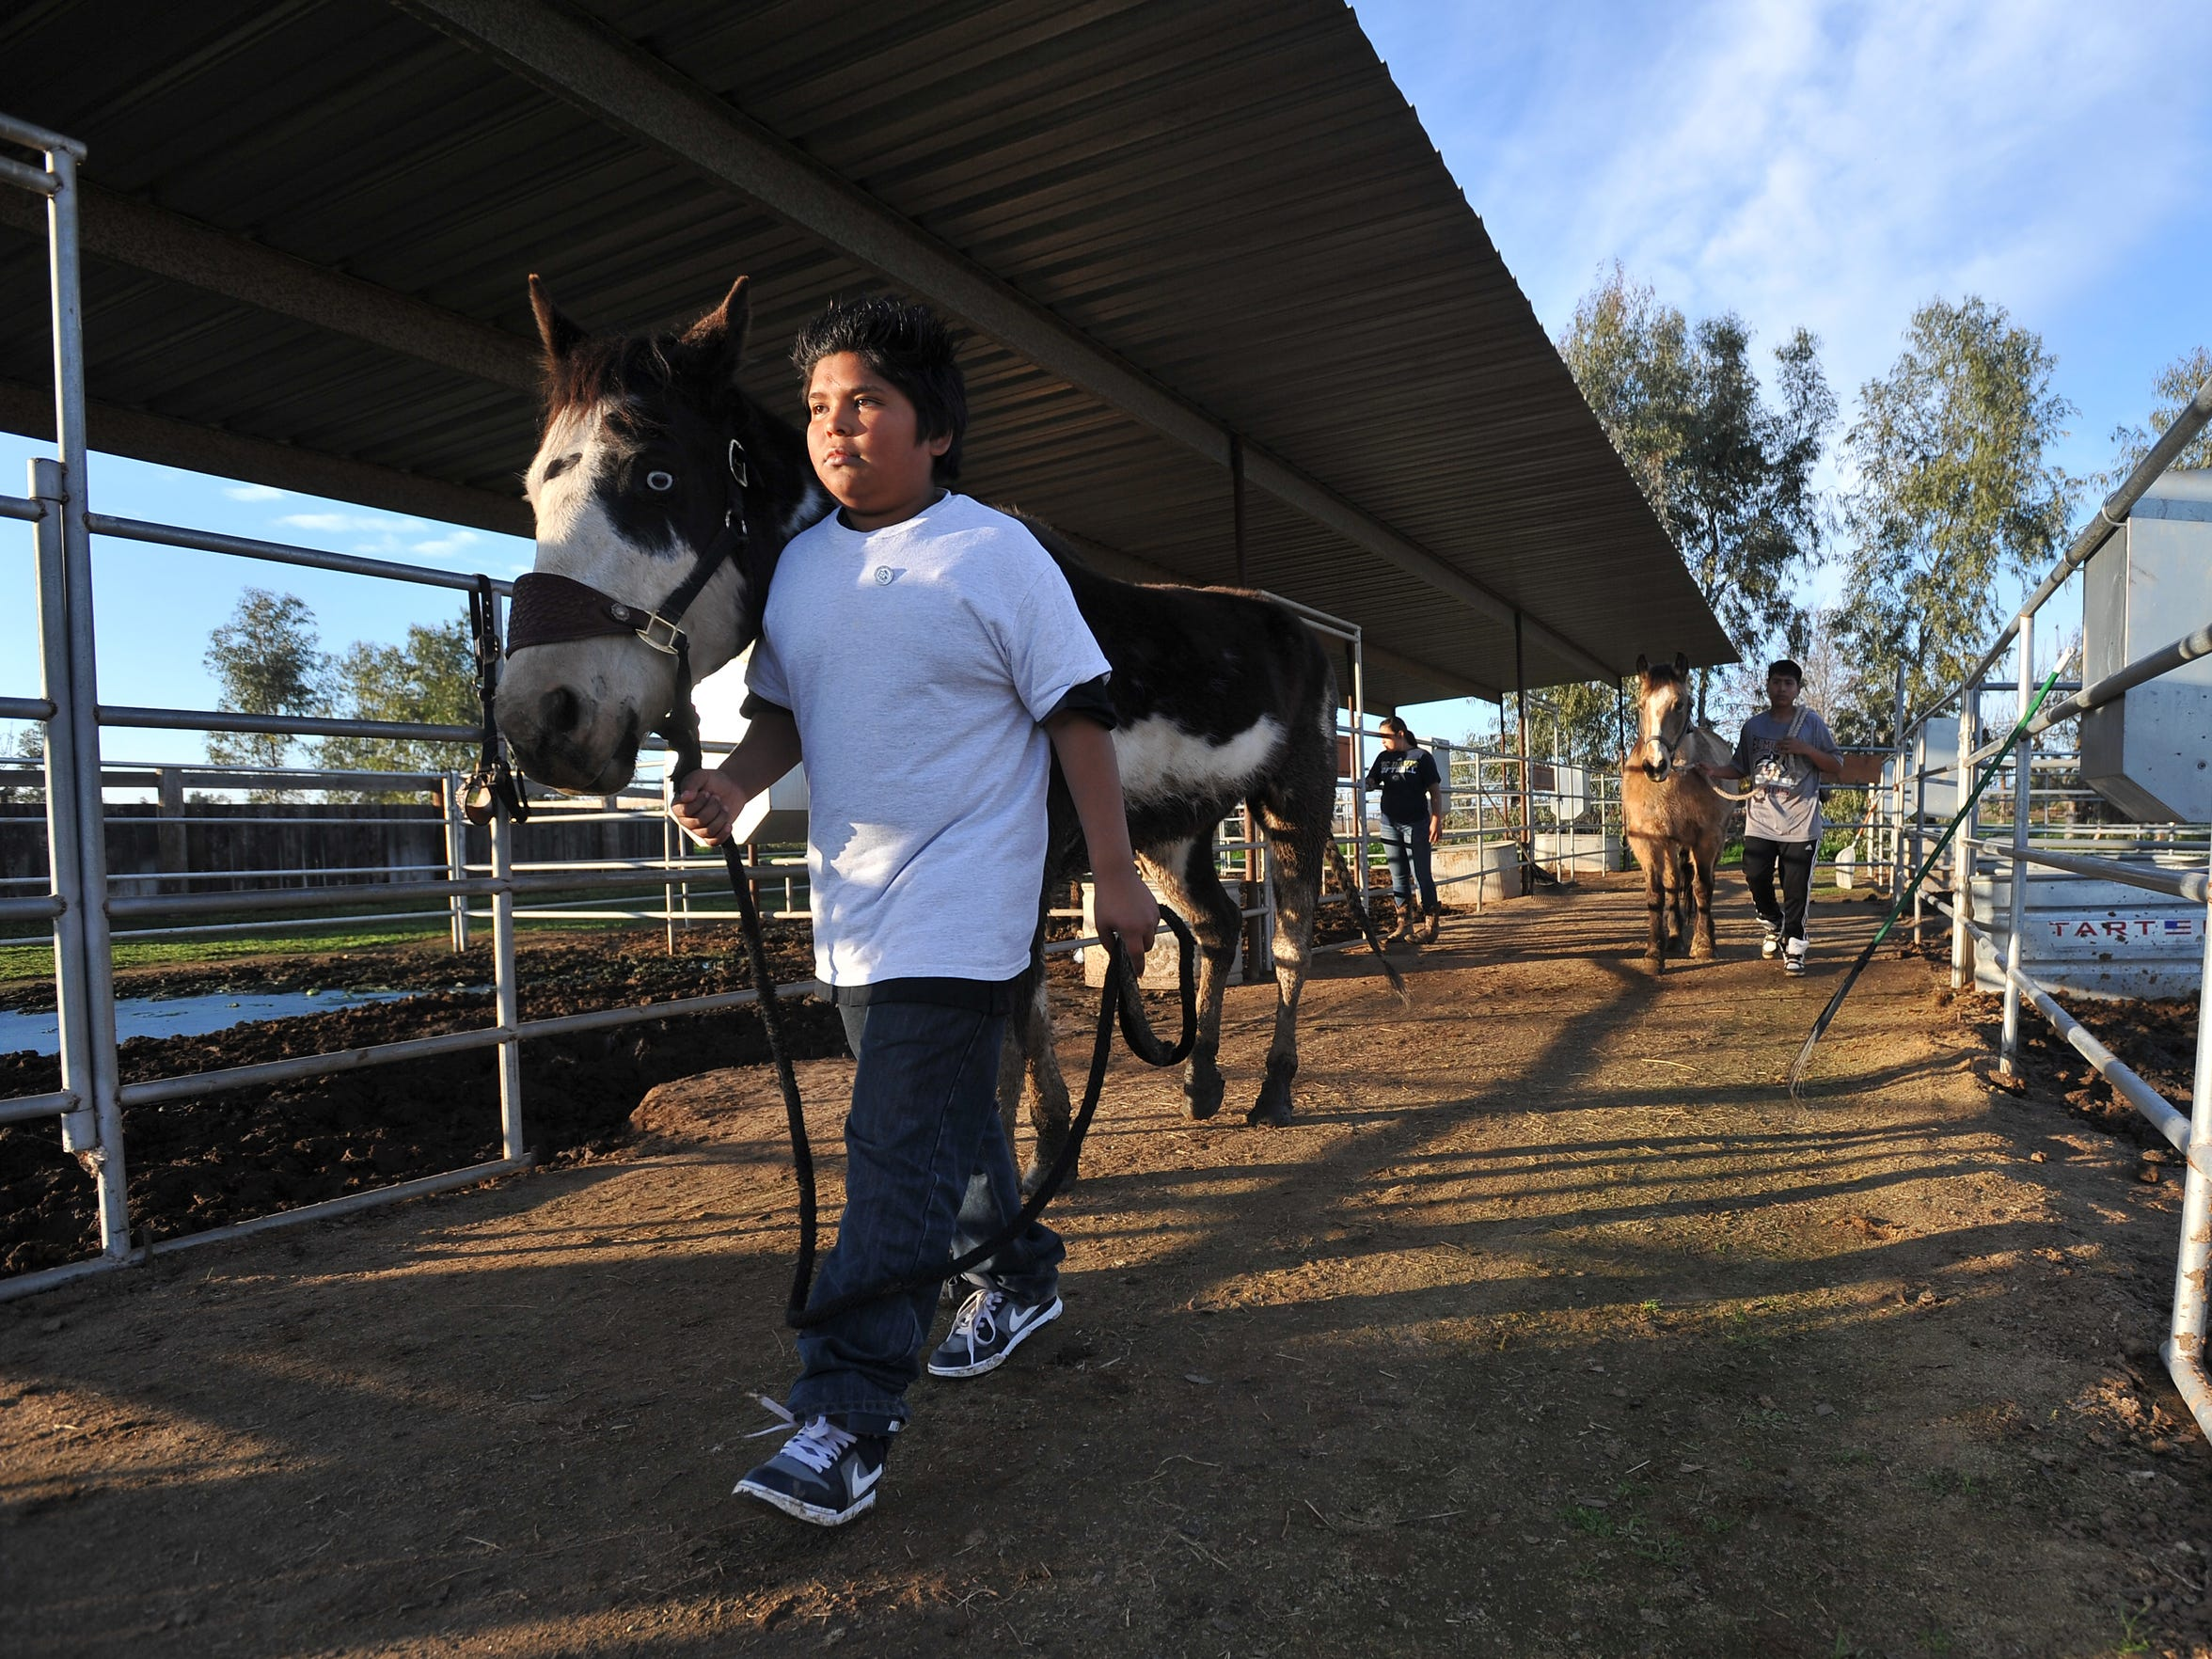 A.L.P.H.A. student Jesus Fernandez of El Monte Middle School walks a horse at JM Ranch on Friday, January 15, 2016.